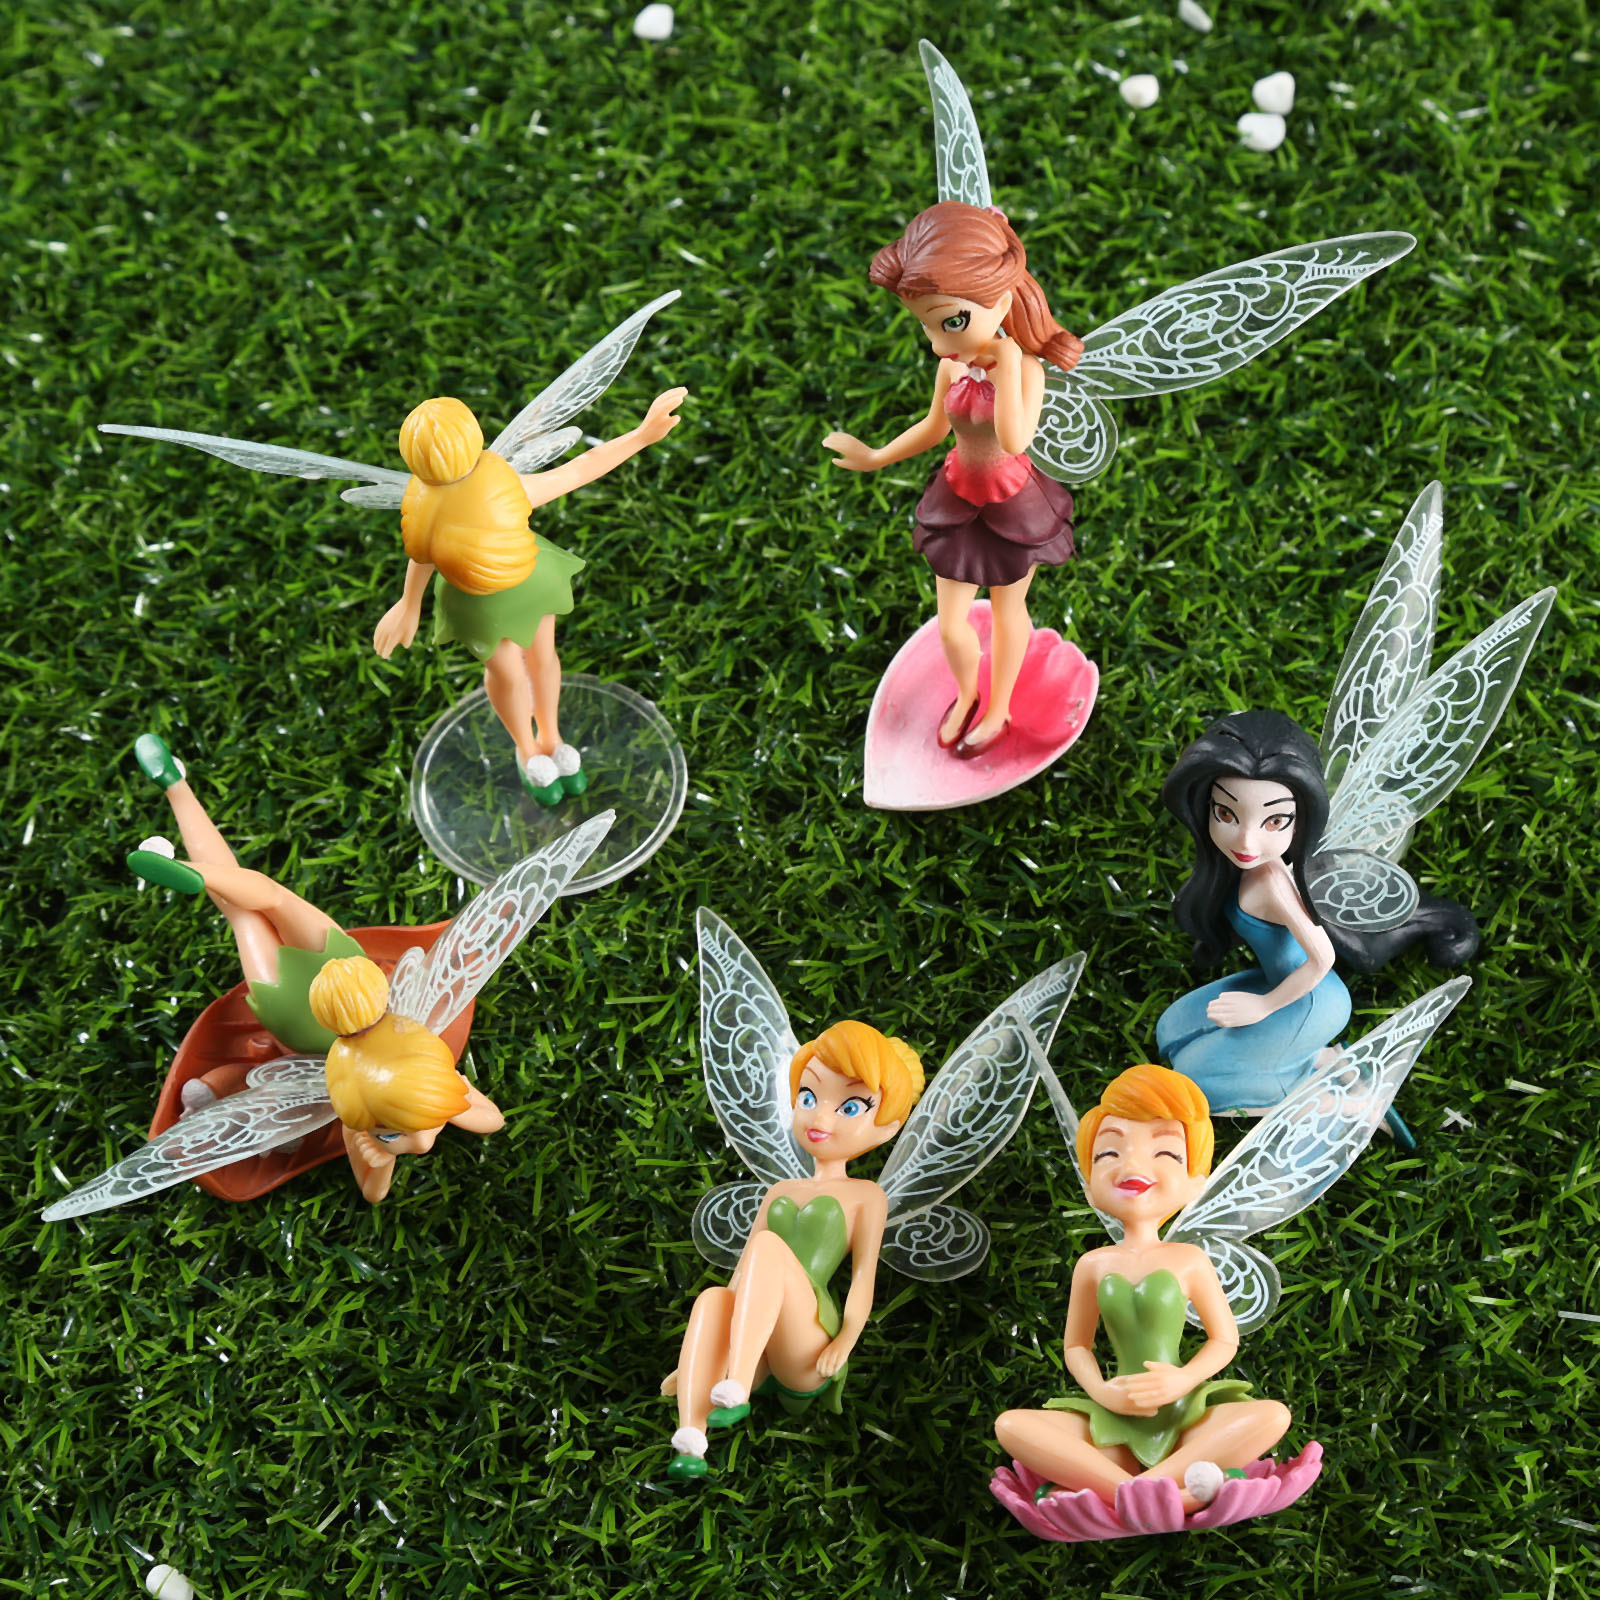 Random Beautiful Fairy Kawaii Gifts Angel Garden Decoration Resin Crafts Home Decor Miniature Fairy Garden Figurines Flower